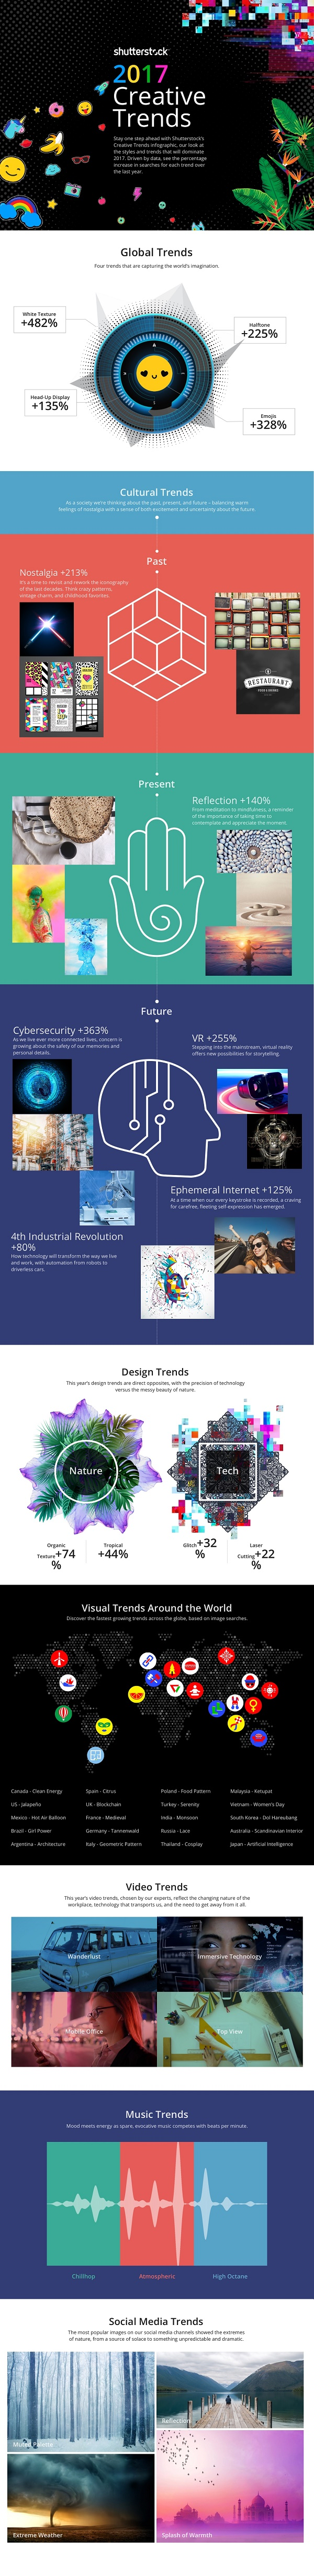 Explore Shutterstock's Global Creative Trends That Will Shape 2017